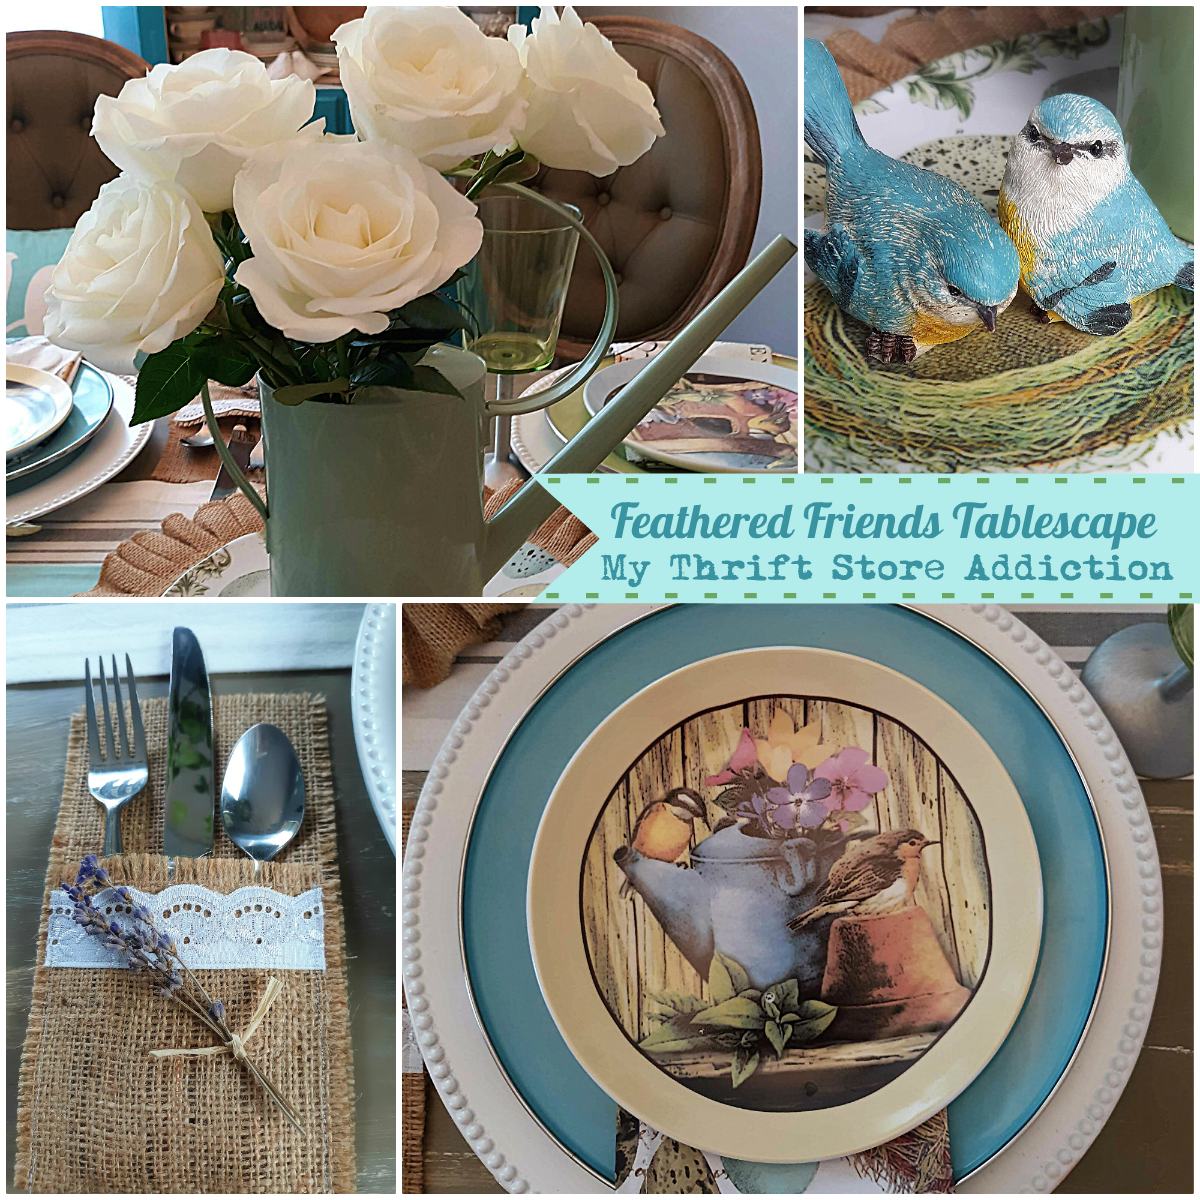 Feathered Friends tablescape